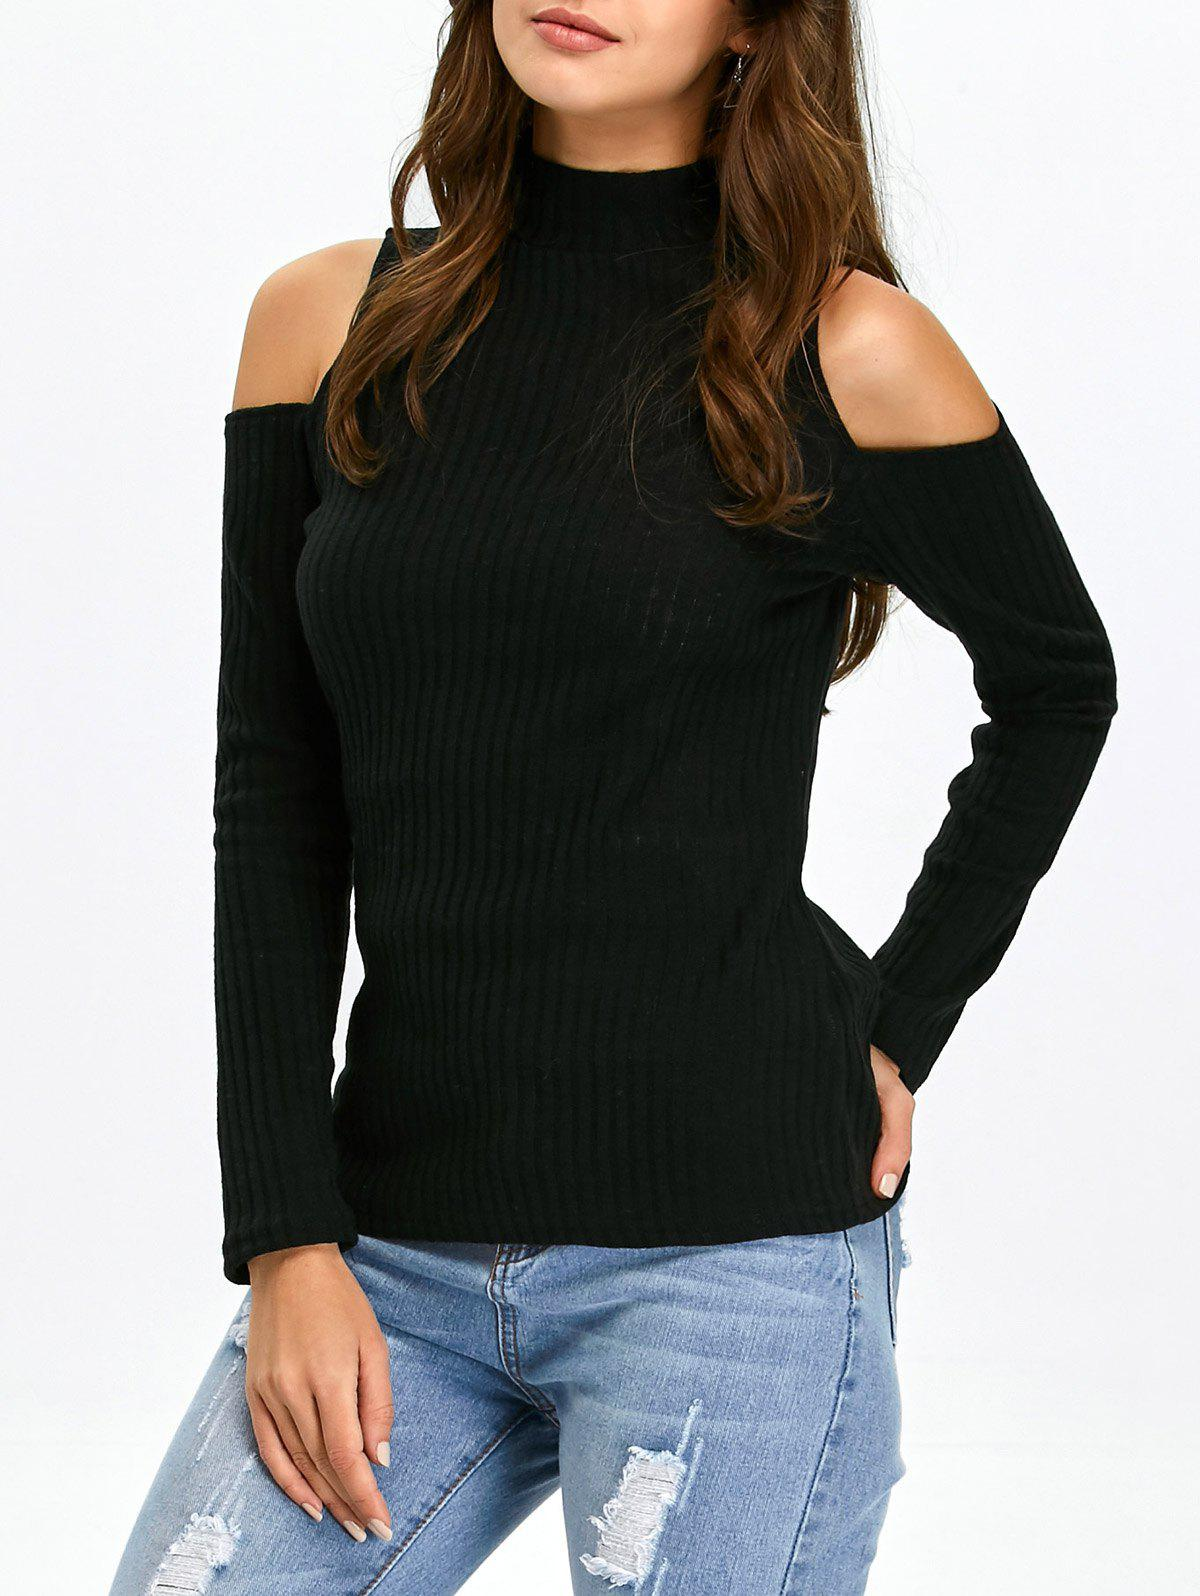 Black Xl Mock Neck Open Shoulder Knitted Top